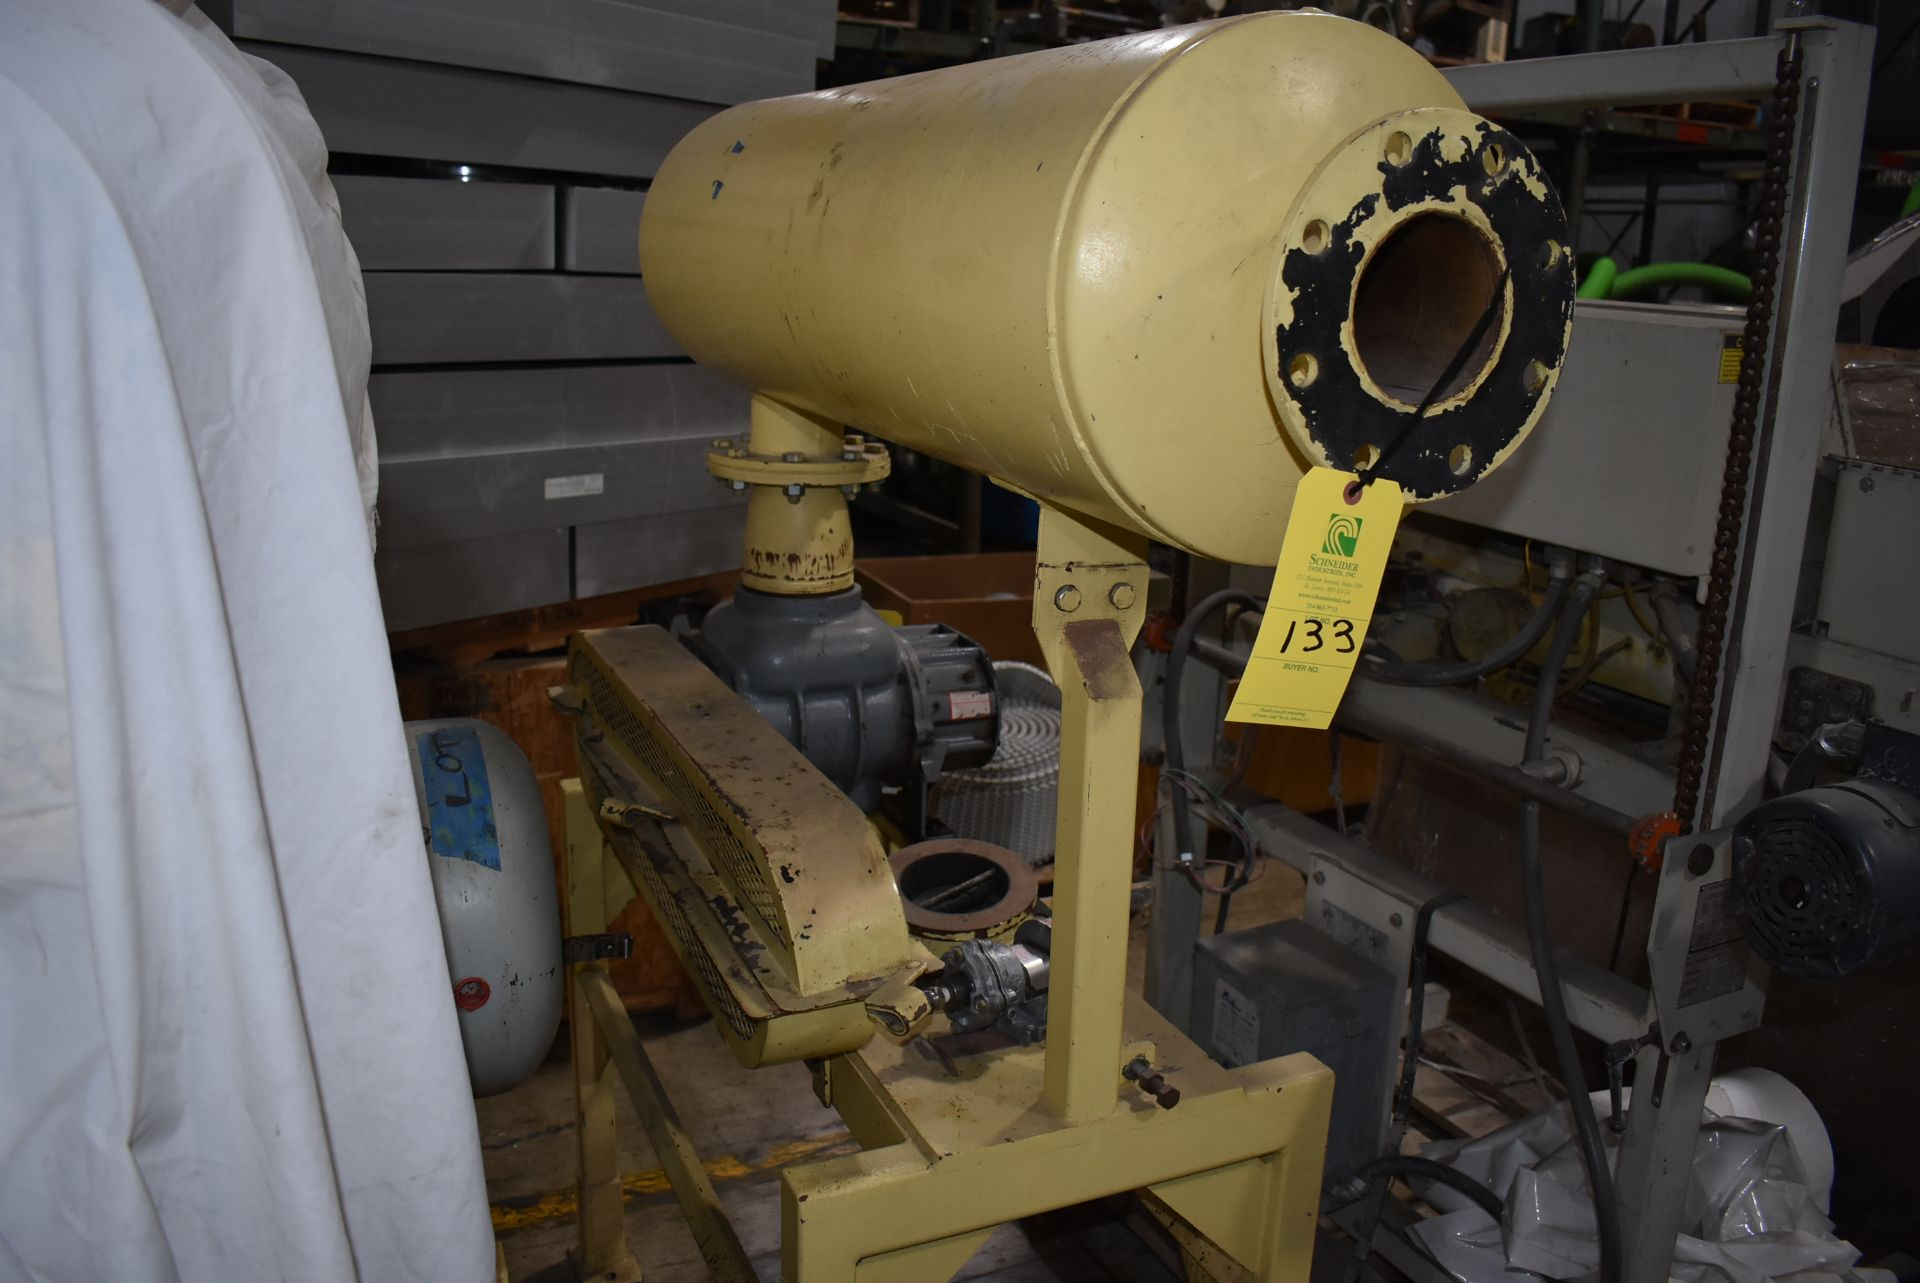 Mill Discharge Blower, NOTE - No Motor - Image 2 of 2